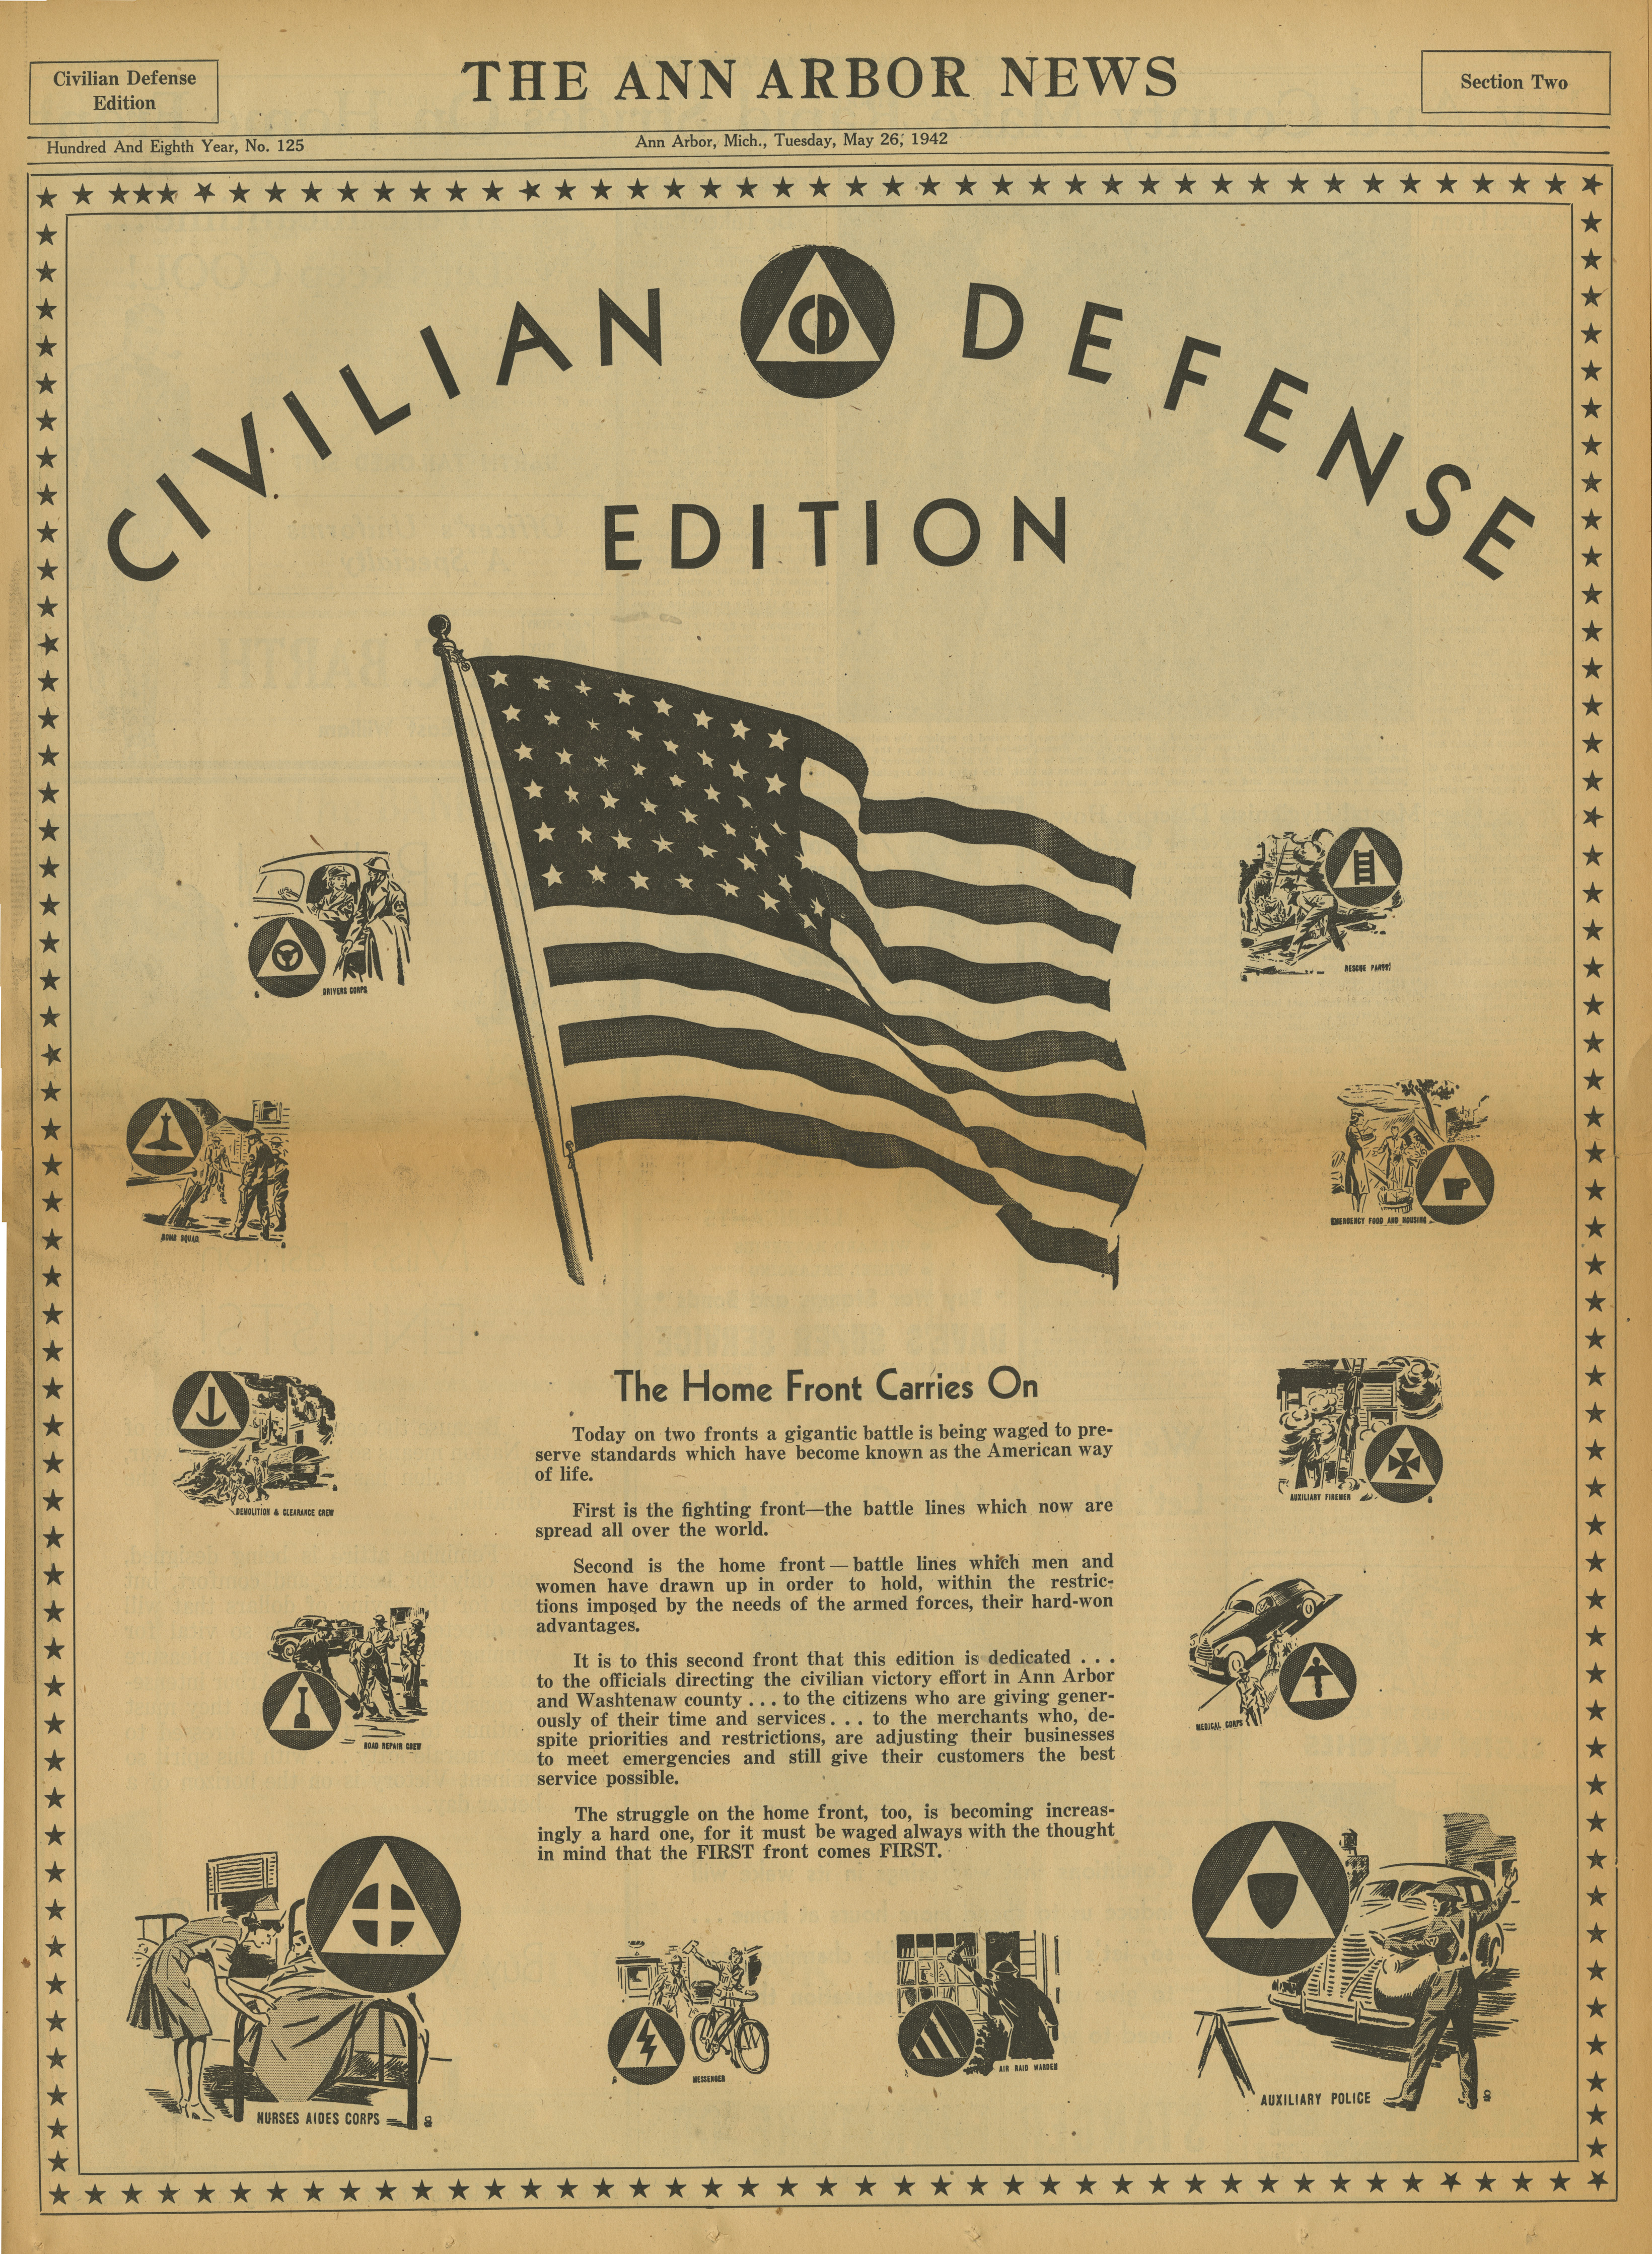 Civilian Defense Edition - Front Page image